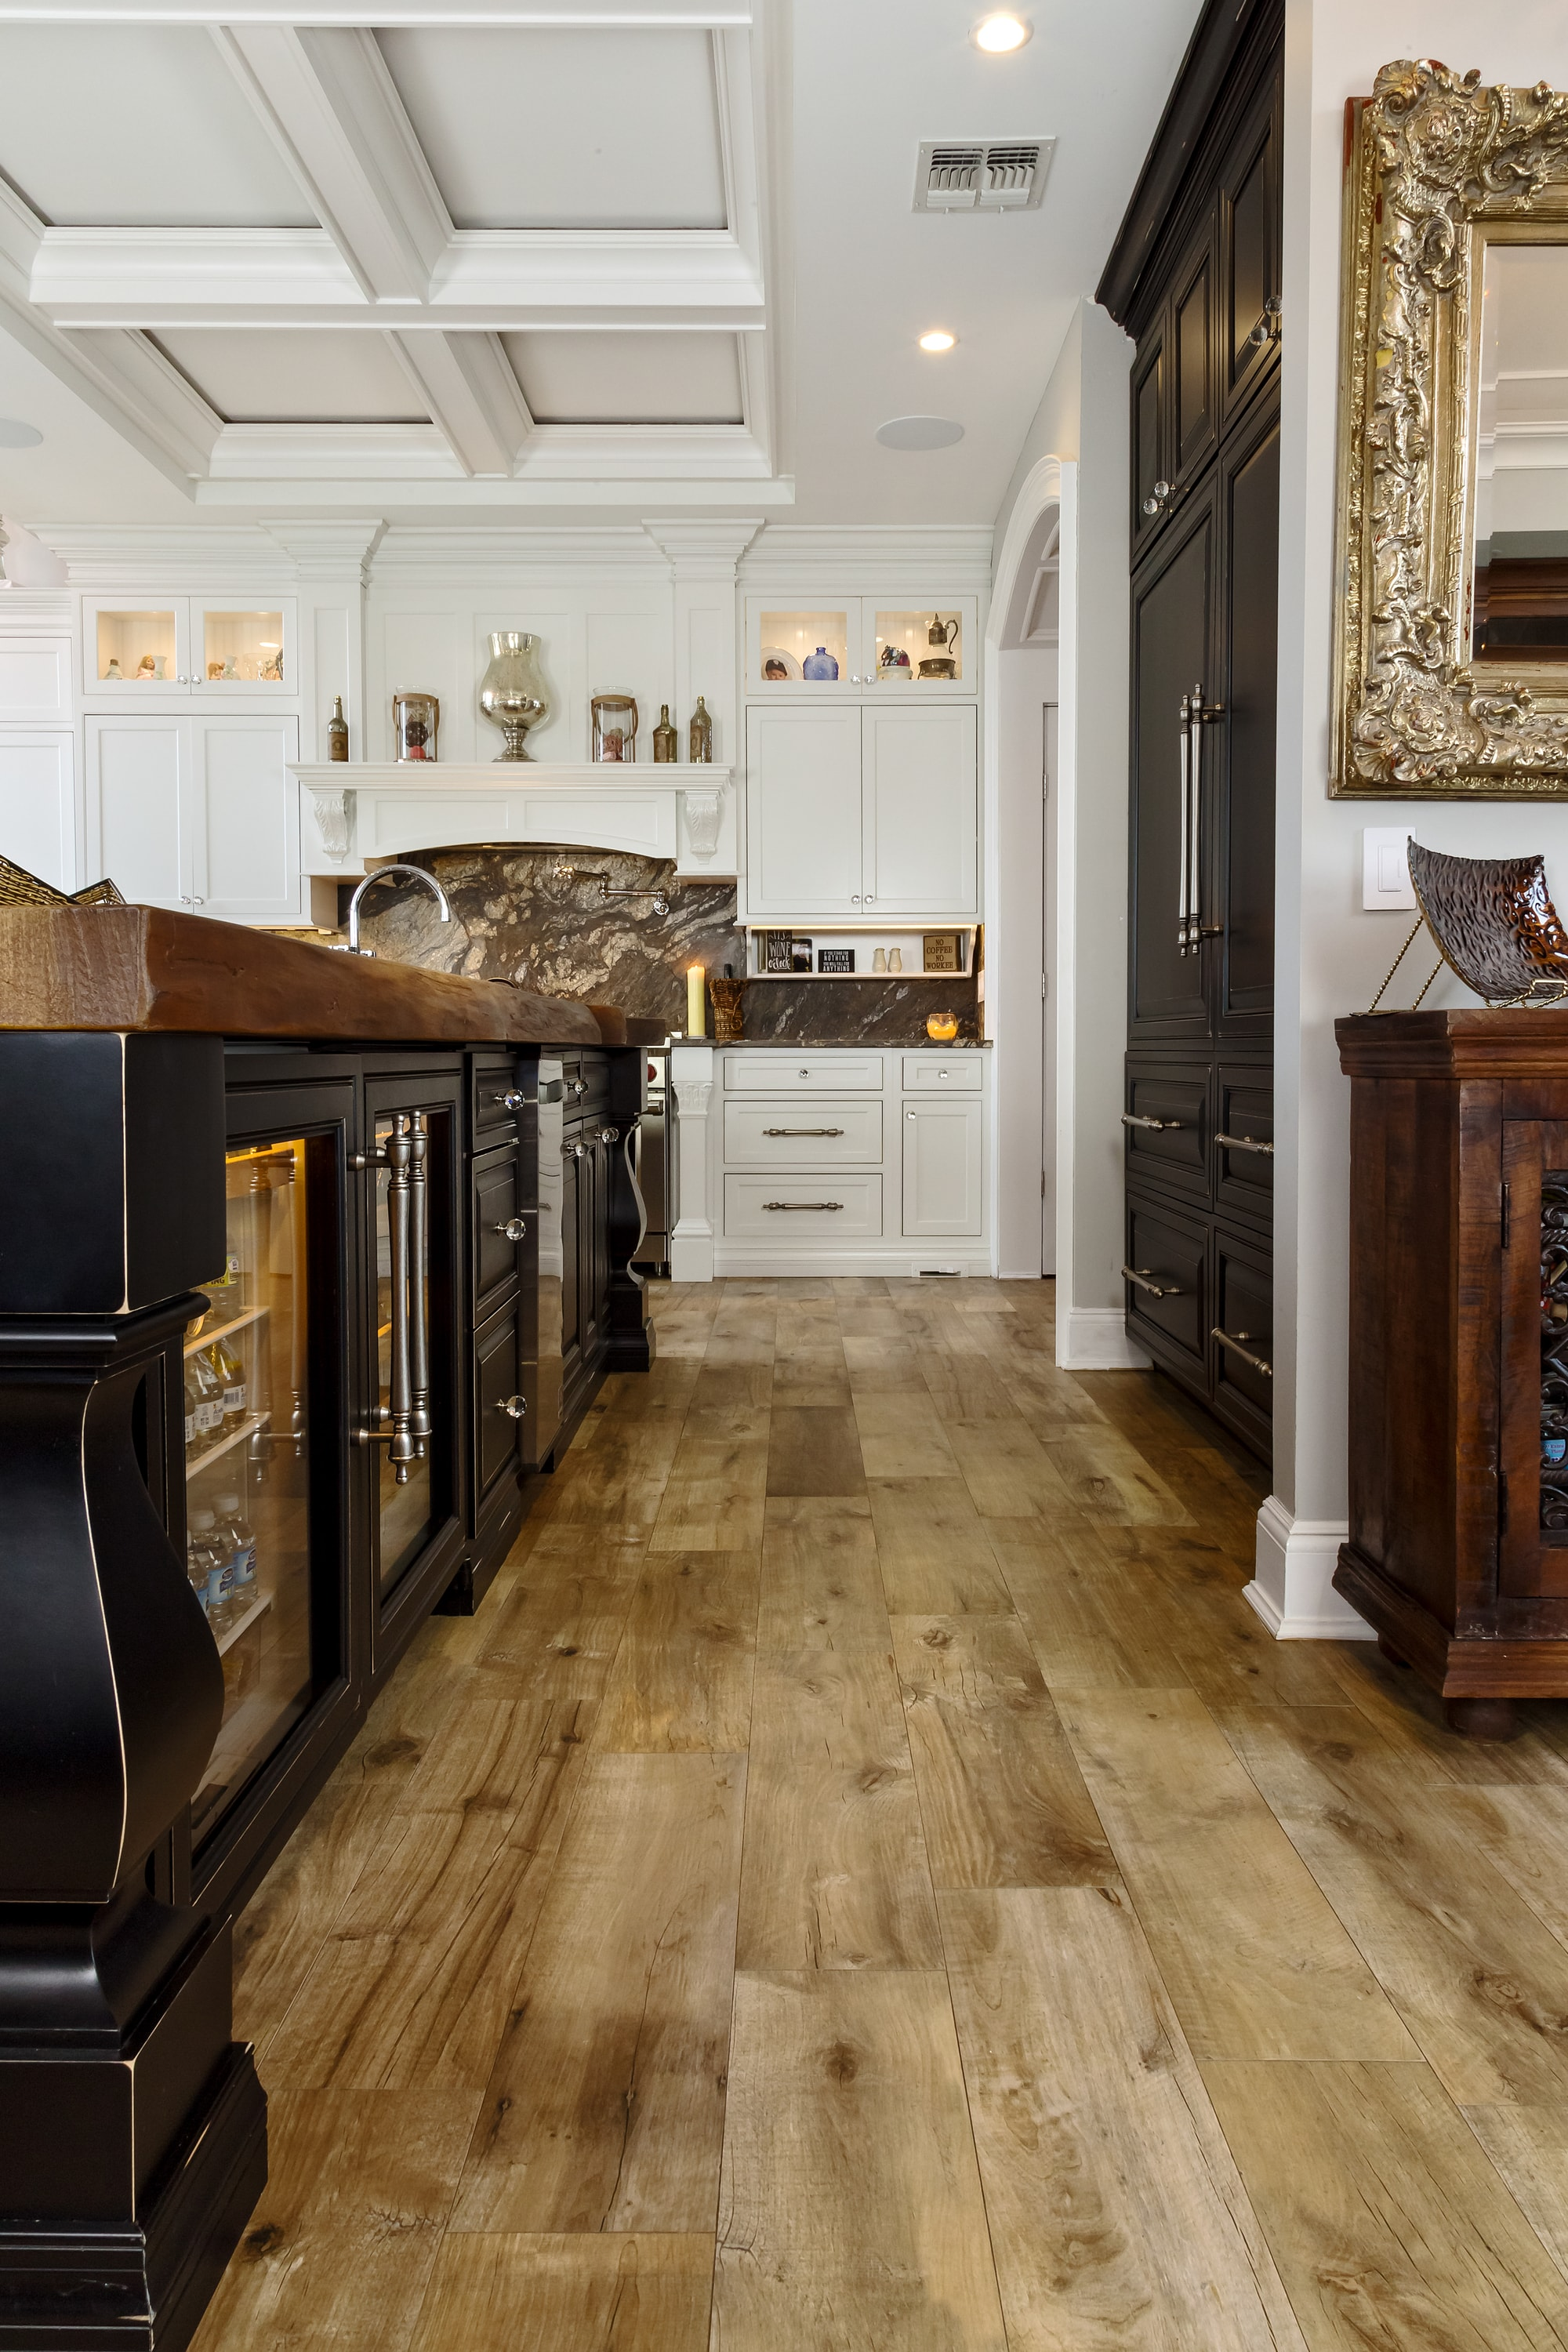 Traditional style kitchen with wooden floors